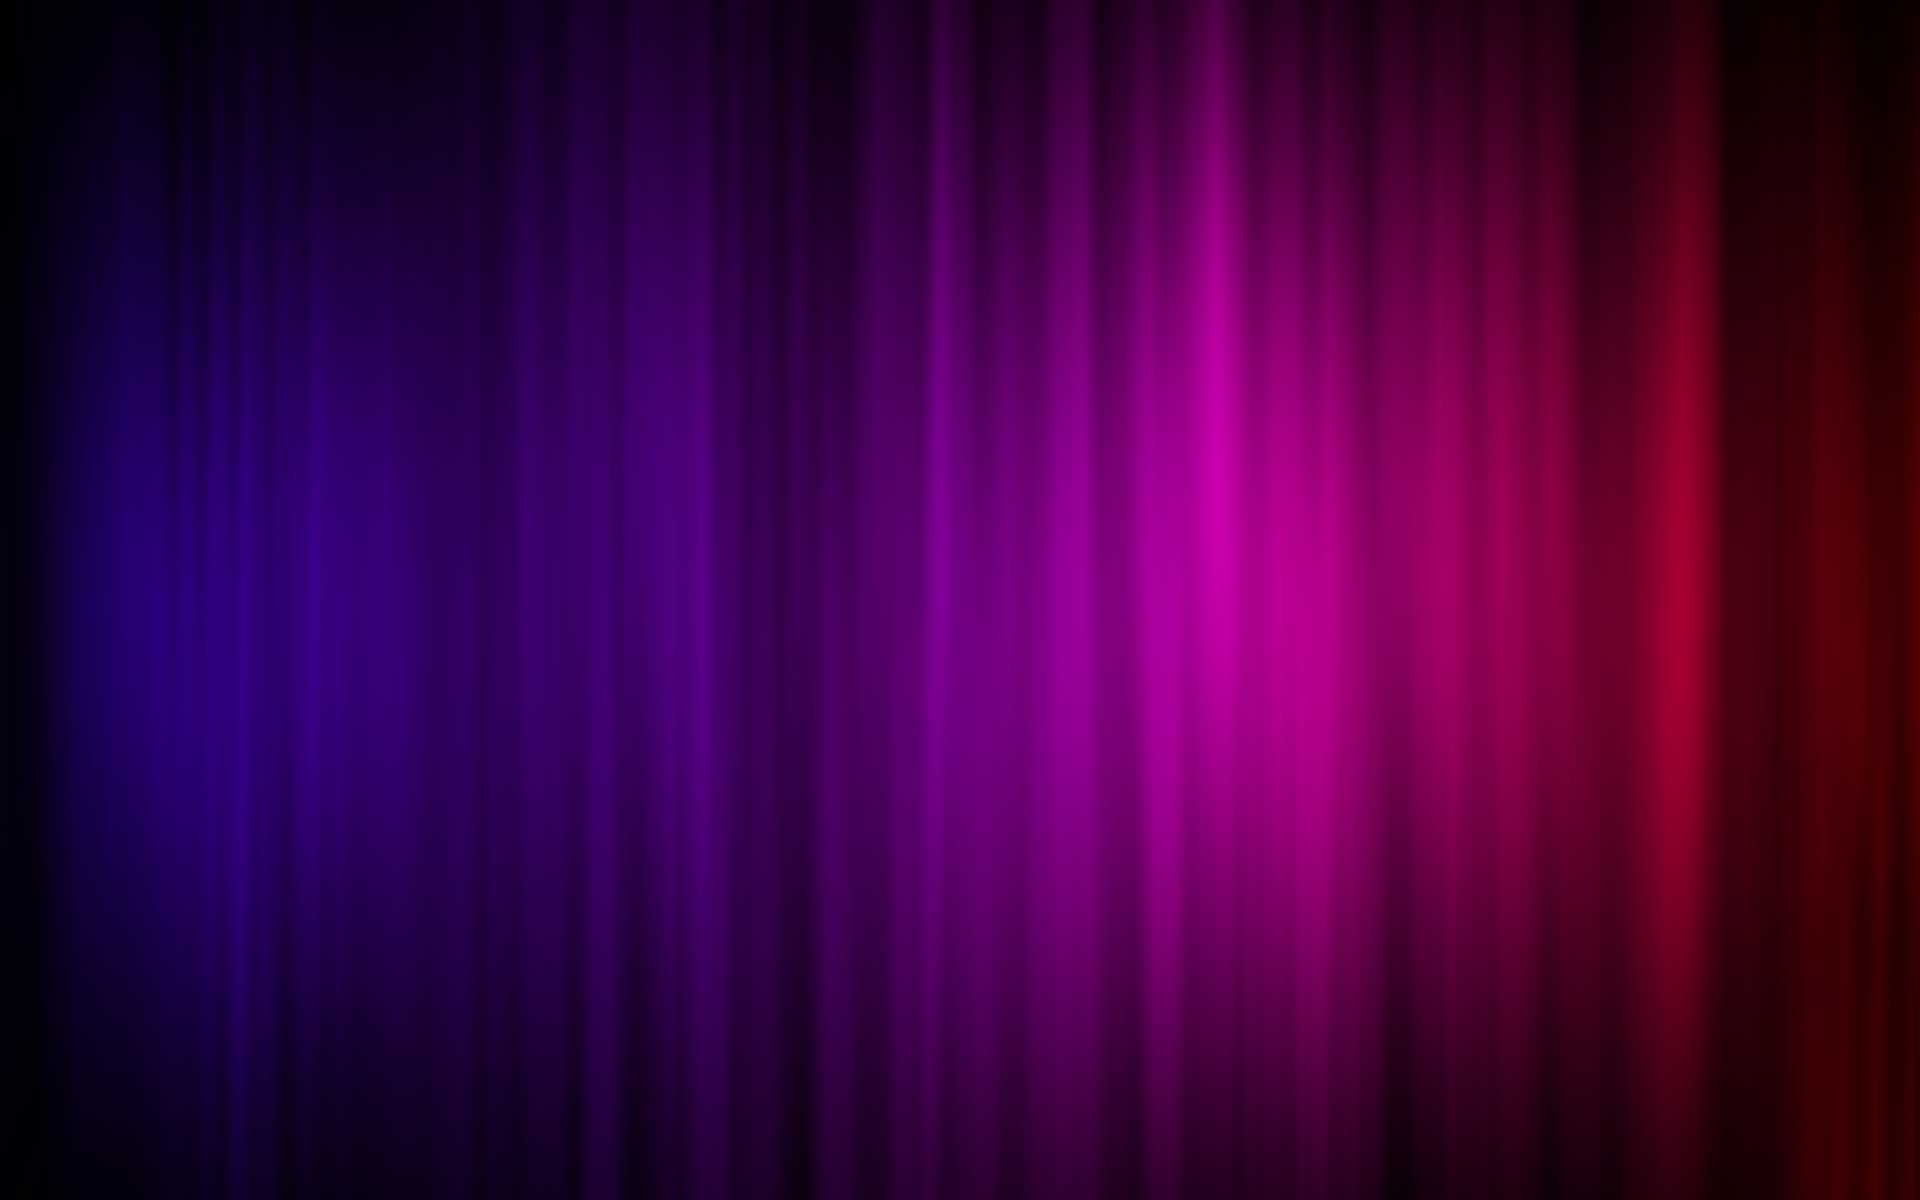 Purple And Blue Backgrounds 1920x1200